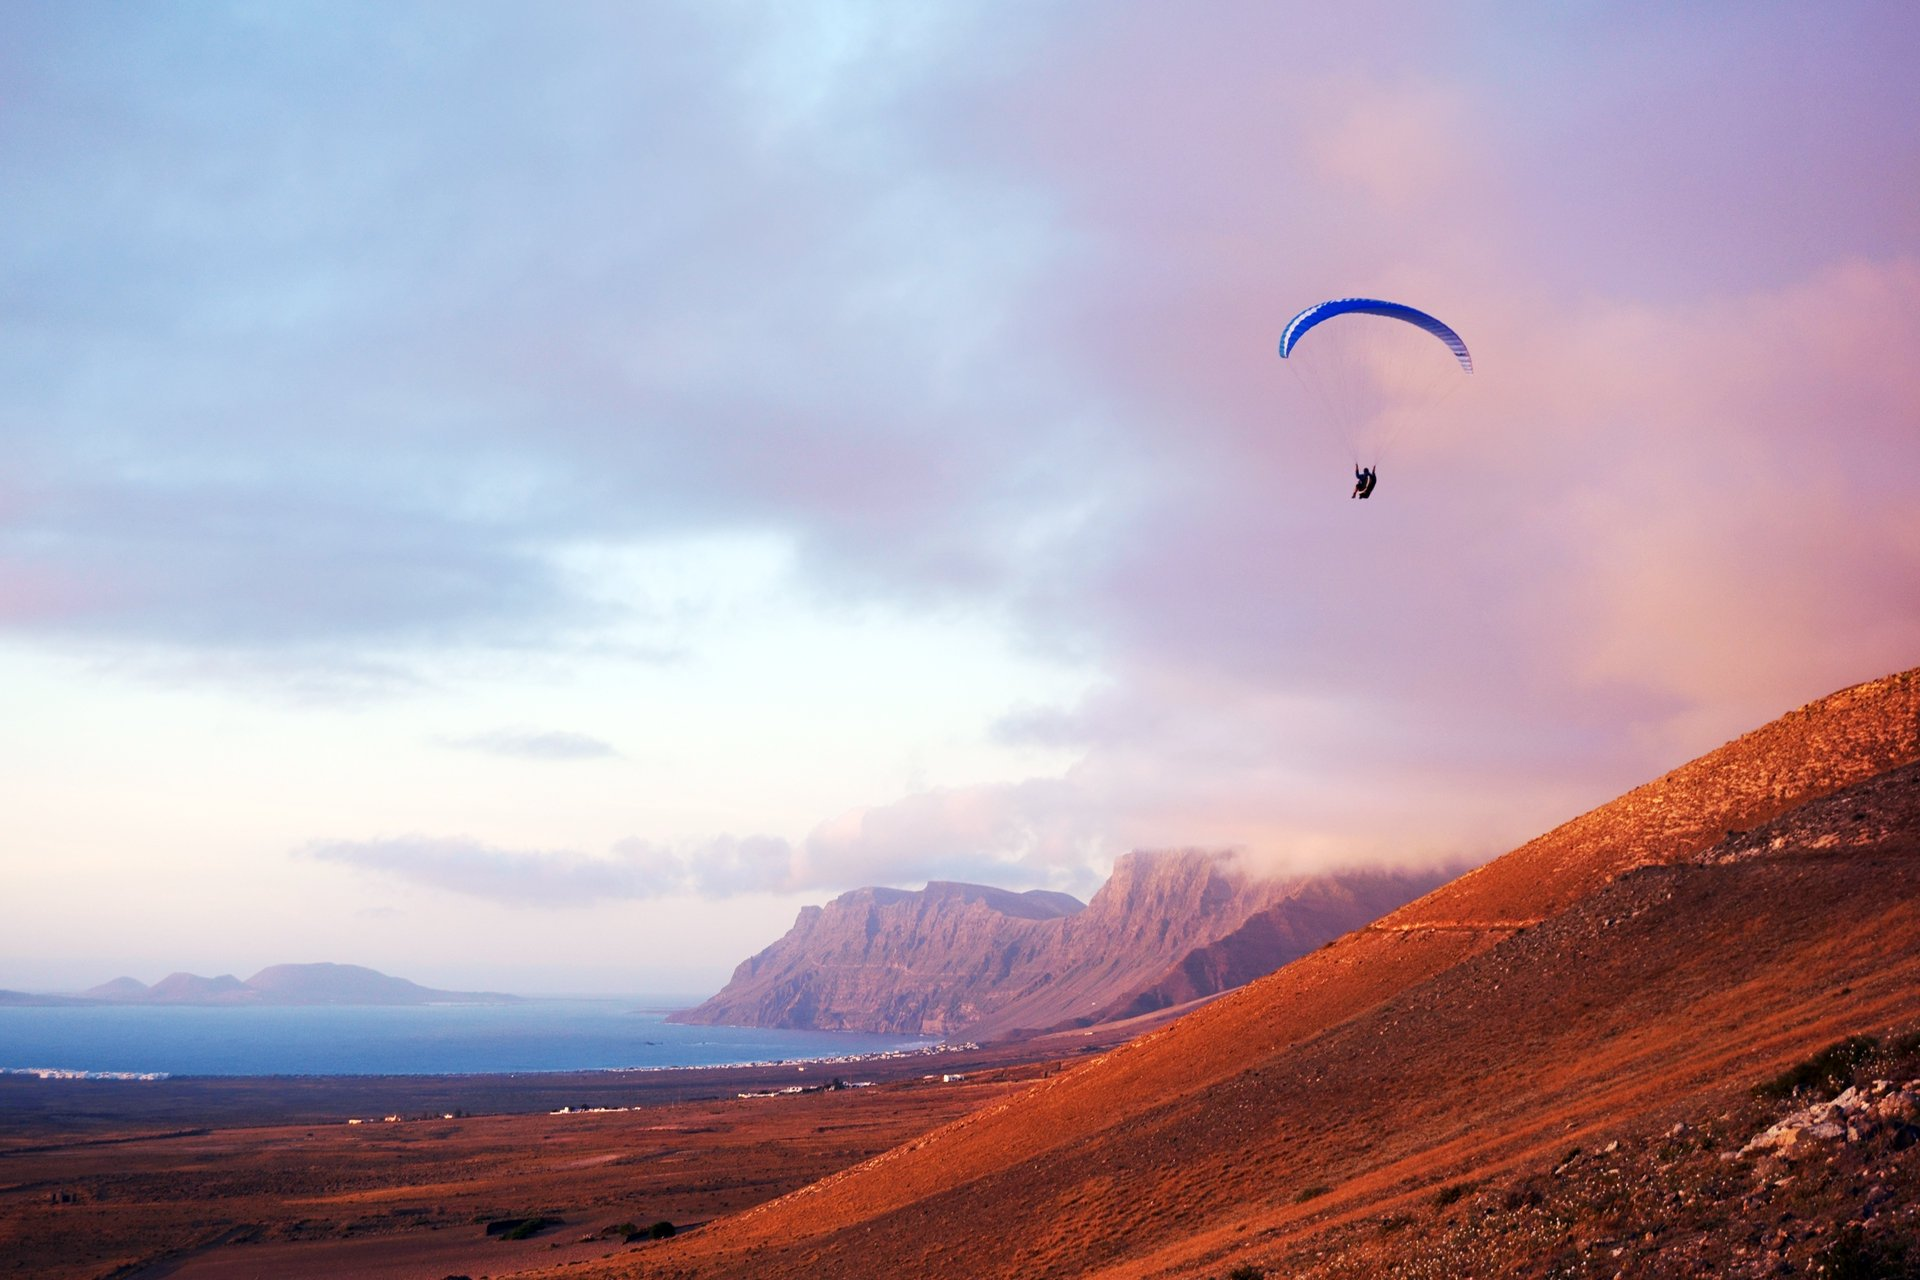 Paragliding from the cliffs of Risco de Famara in Lanzarote